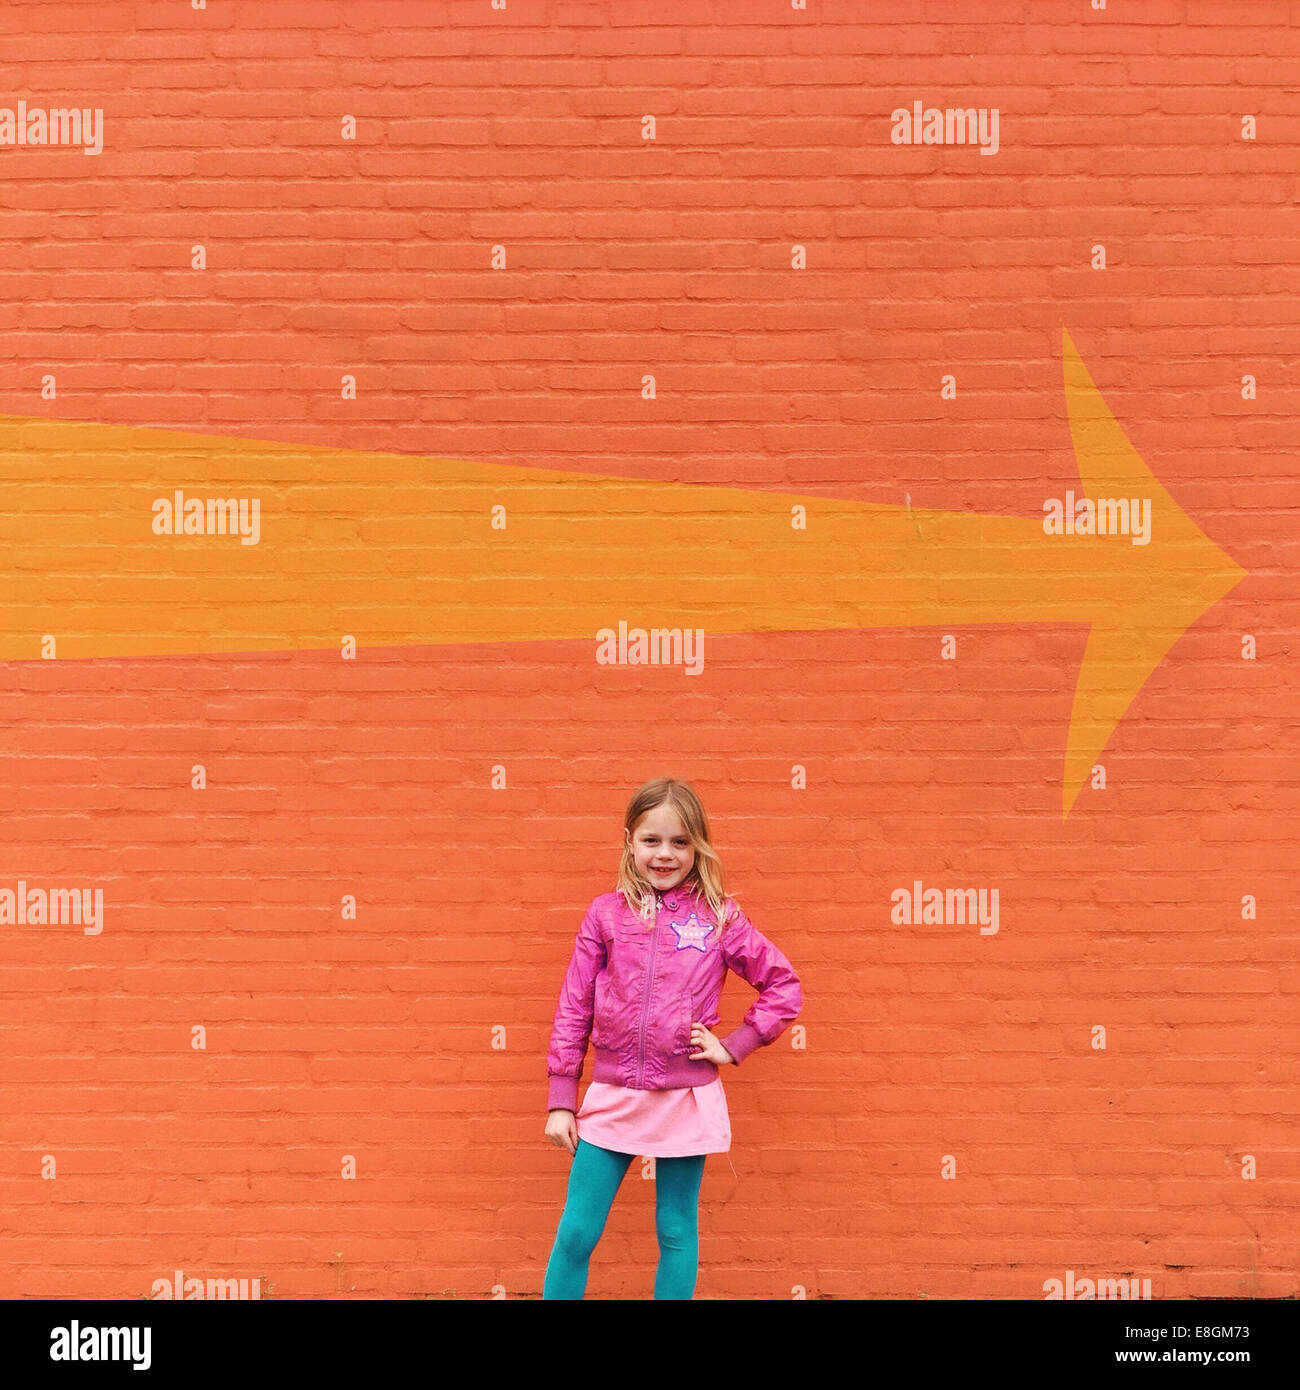 Portrait of girl (12-13) standing in front of orange wall - Stock Image